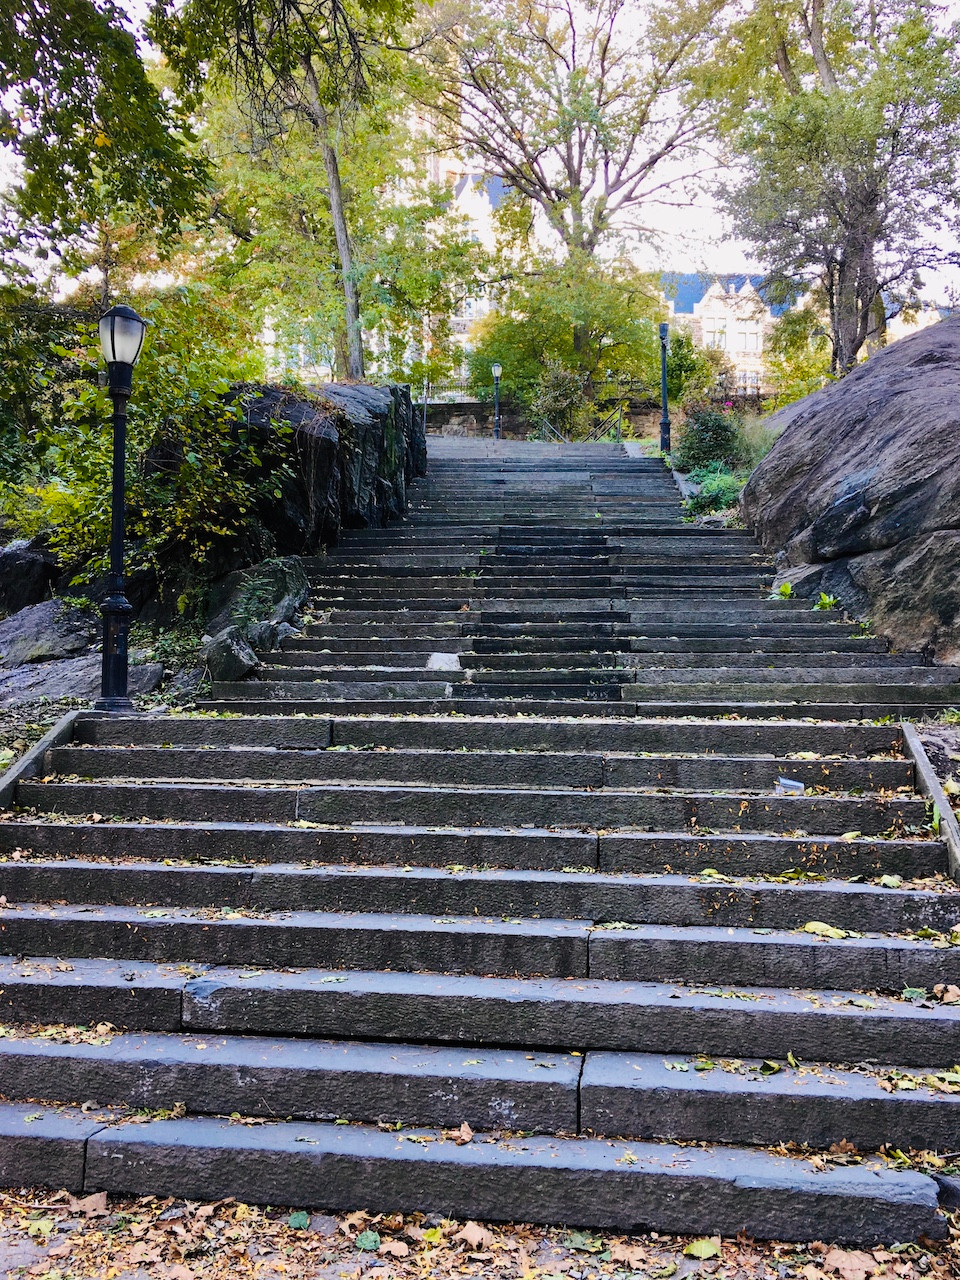 The stairs in St. Nicholas Park are great for a workout